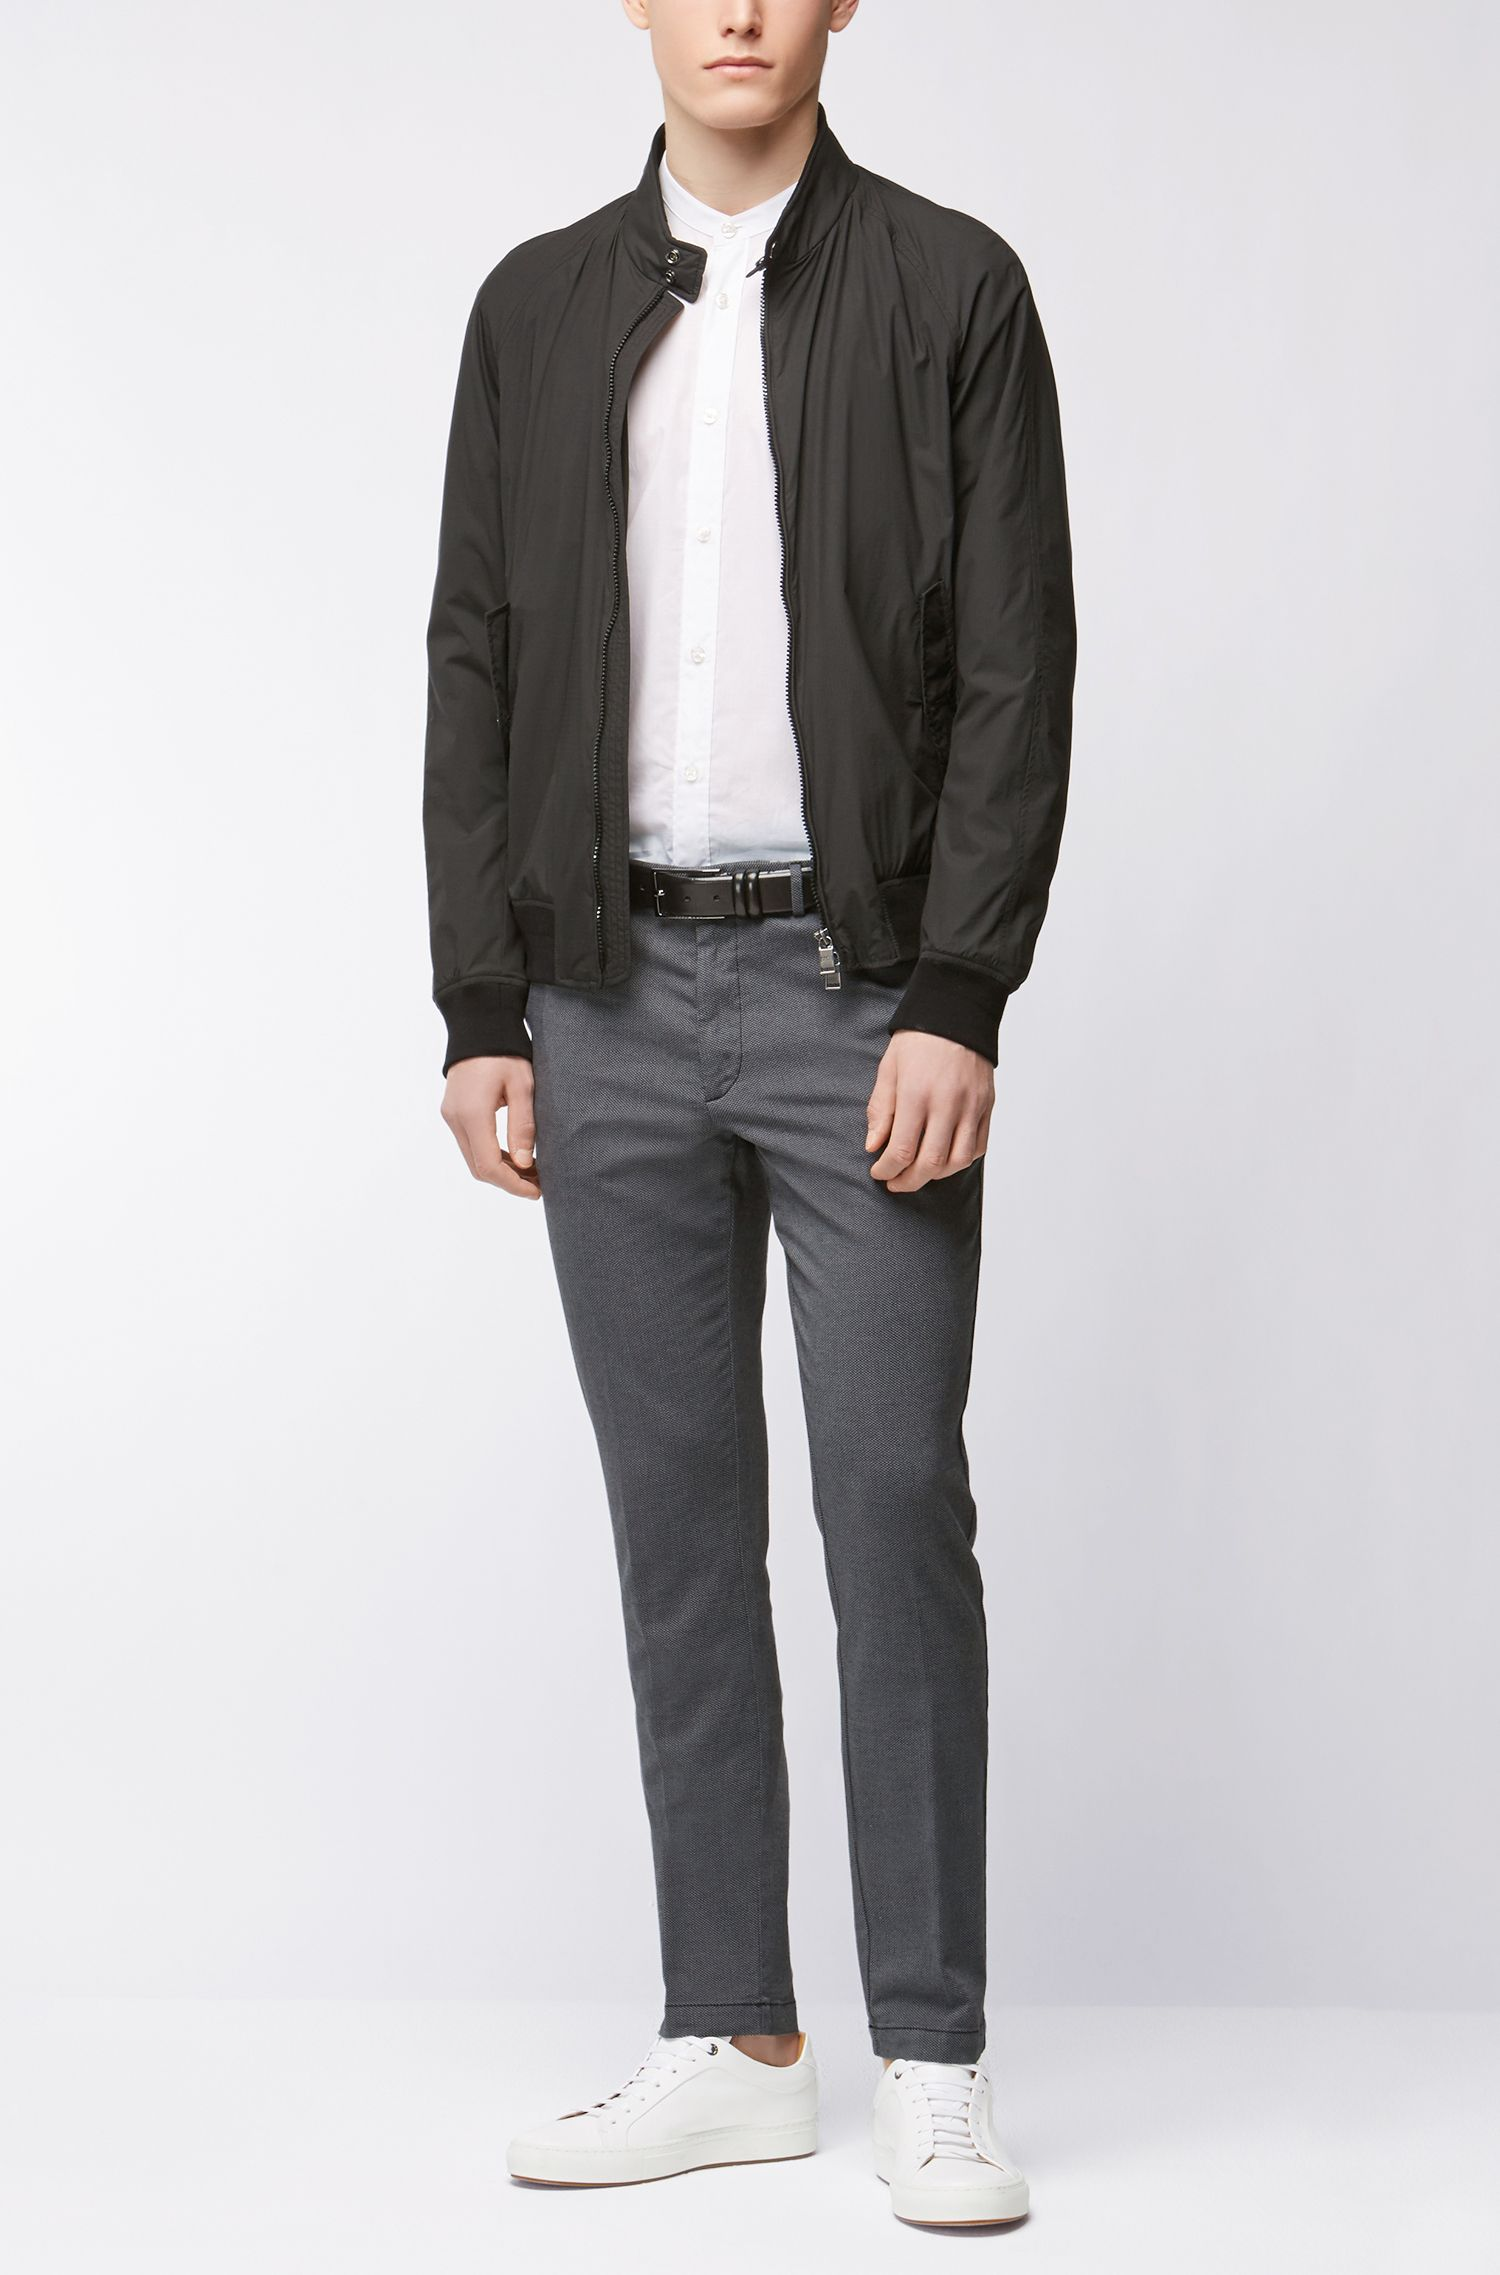 Stretch Cotton Pant, Tapered Fit | Kaito W, Dark Grey